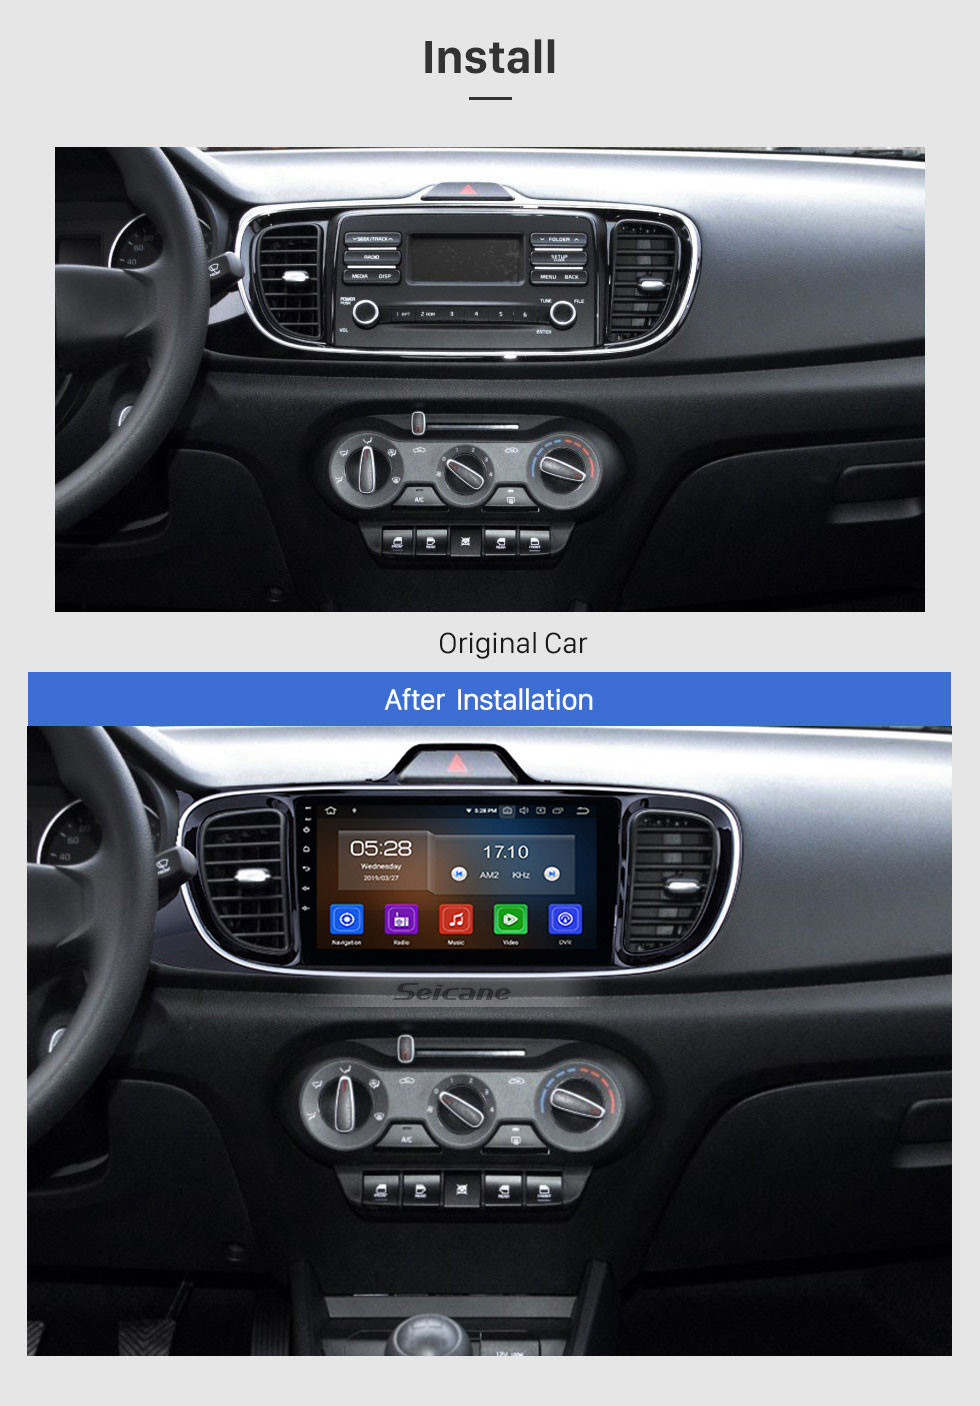 Seicane 9 inch touchscreen 2017 KIA PEGAS LHD Android 10.0 Car Radio GPS Navigation Head unit Bluetooth  music USB support OBD Carplay Backup Camera 1080P DVD Player 4G Wifi